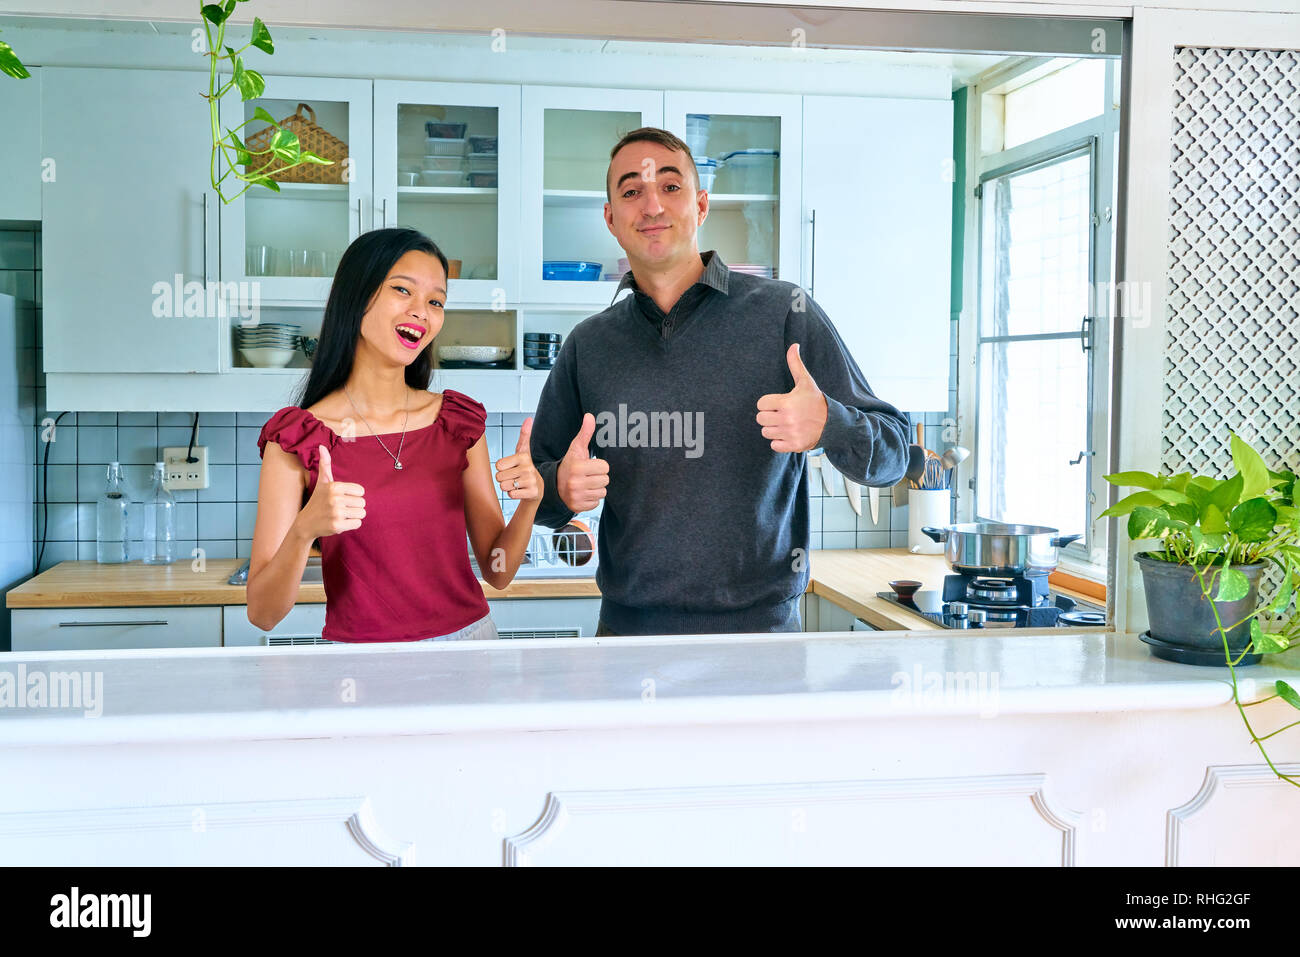 Lovely couple posing - thumbs up and looking at camera - Stock Image